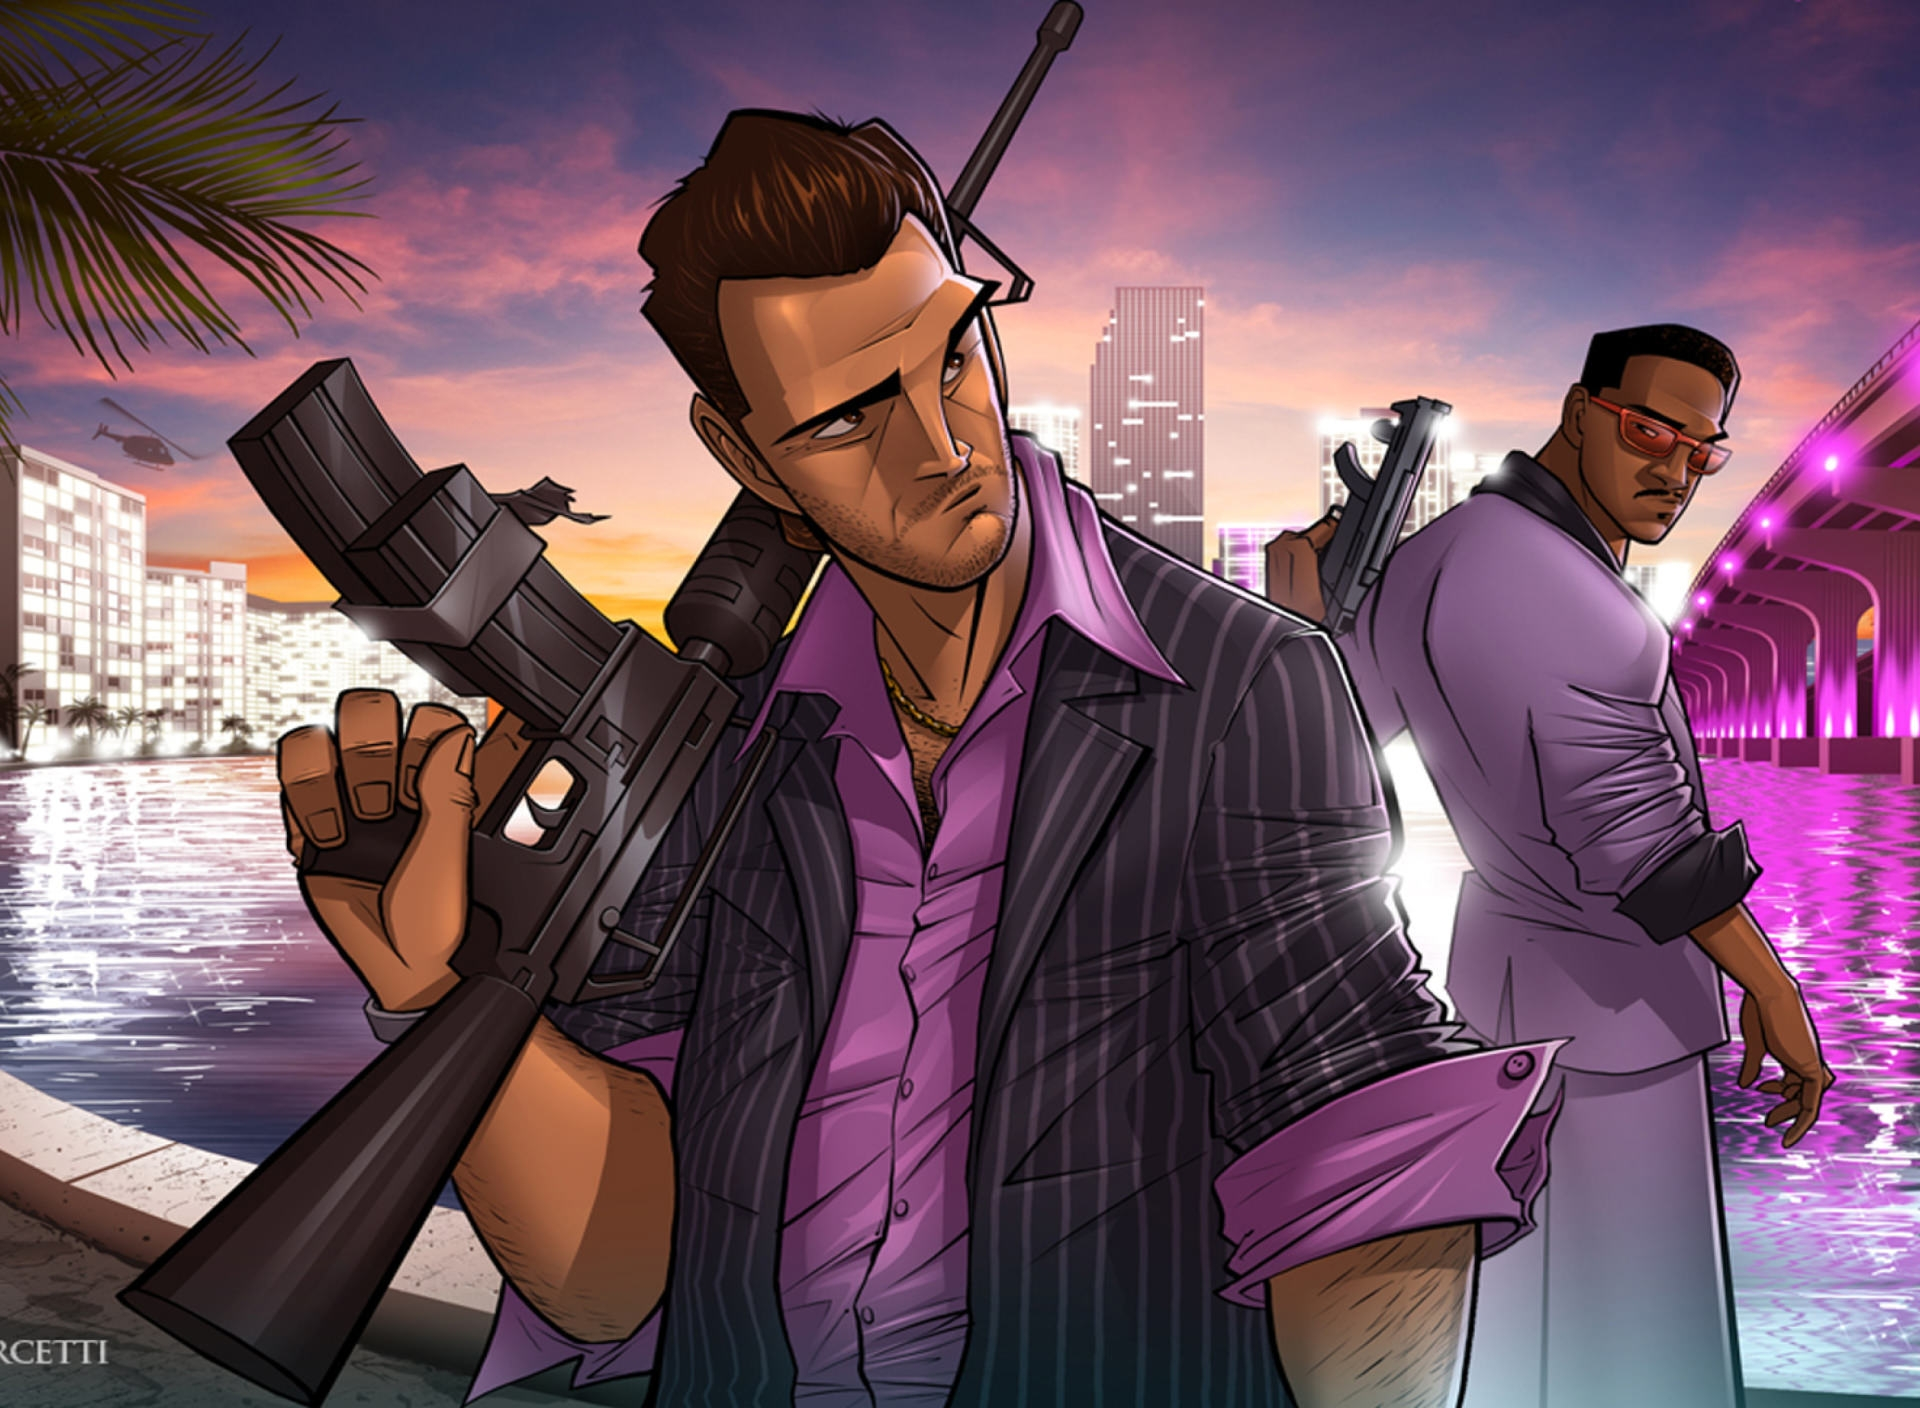 Tommy-Vercetti-in-Grand-Theft-Auto-Vice-City-1920x1408